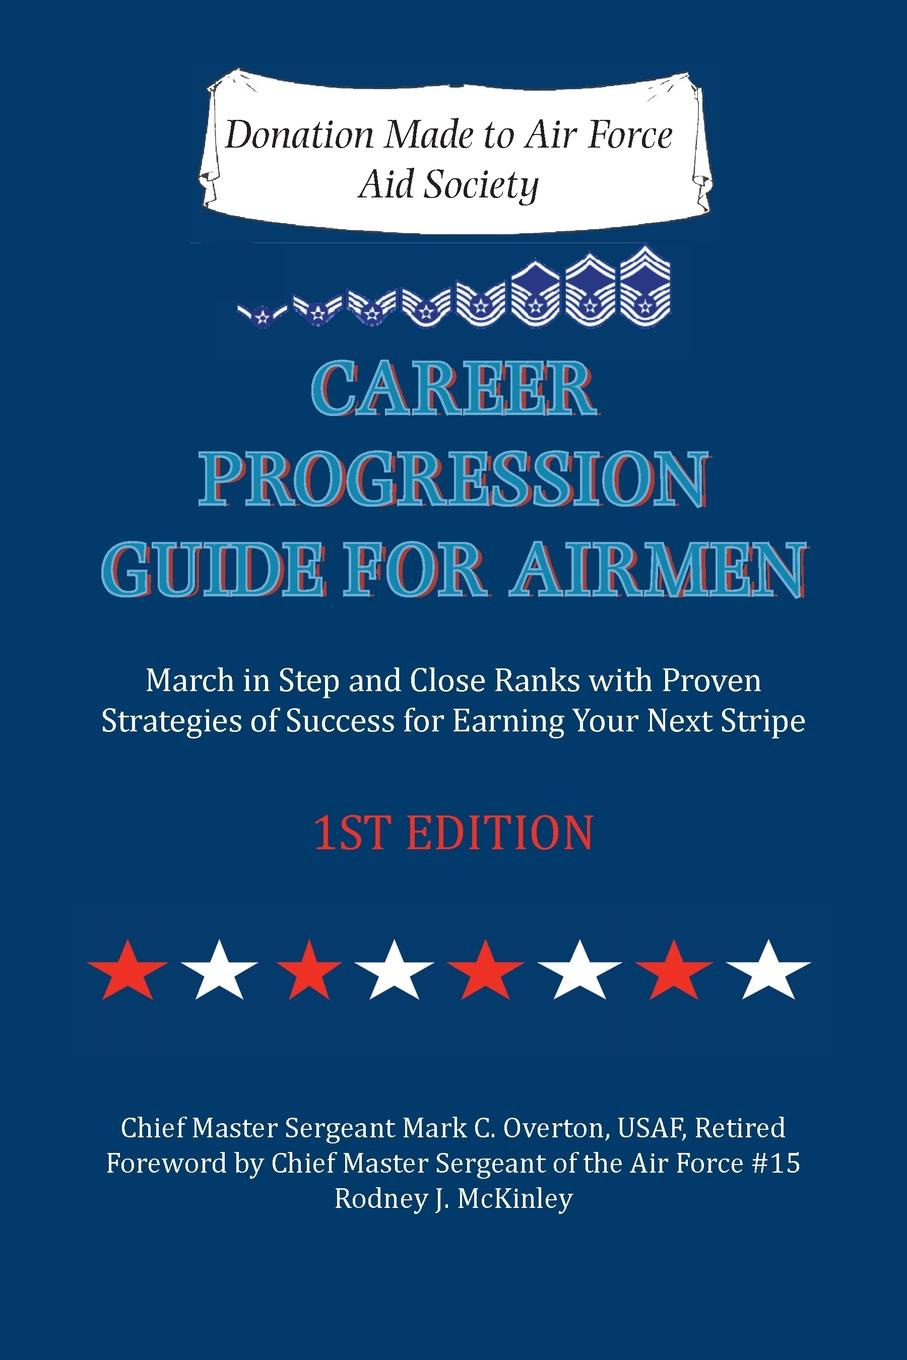 Mark C. Overton Career Progression Guide for Airmen. March in Step and Close Ranks with Proven Strategies of Success for Earning Your Next Stripe 1ST EDITION kevin matras finding 1 stocks screening backtesting and time proven strategies